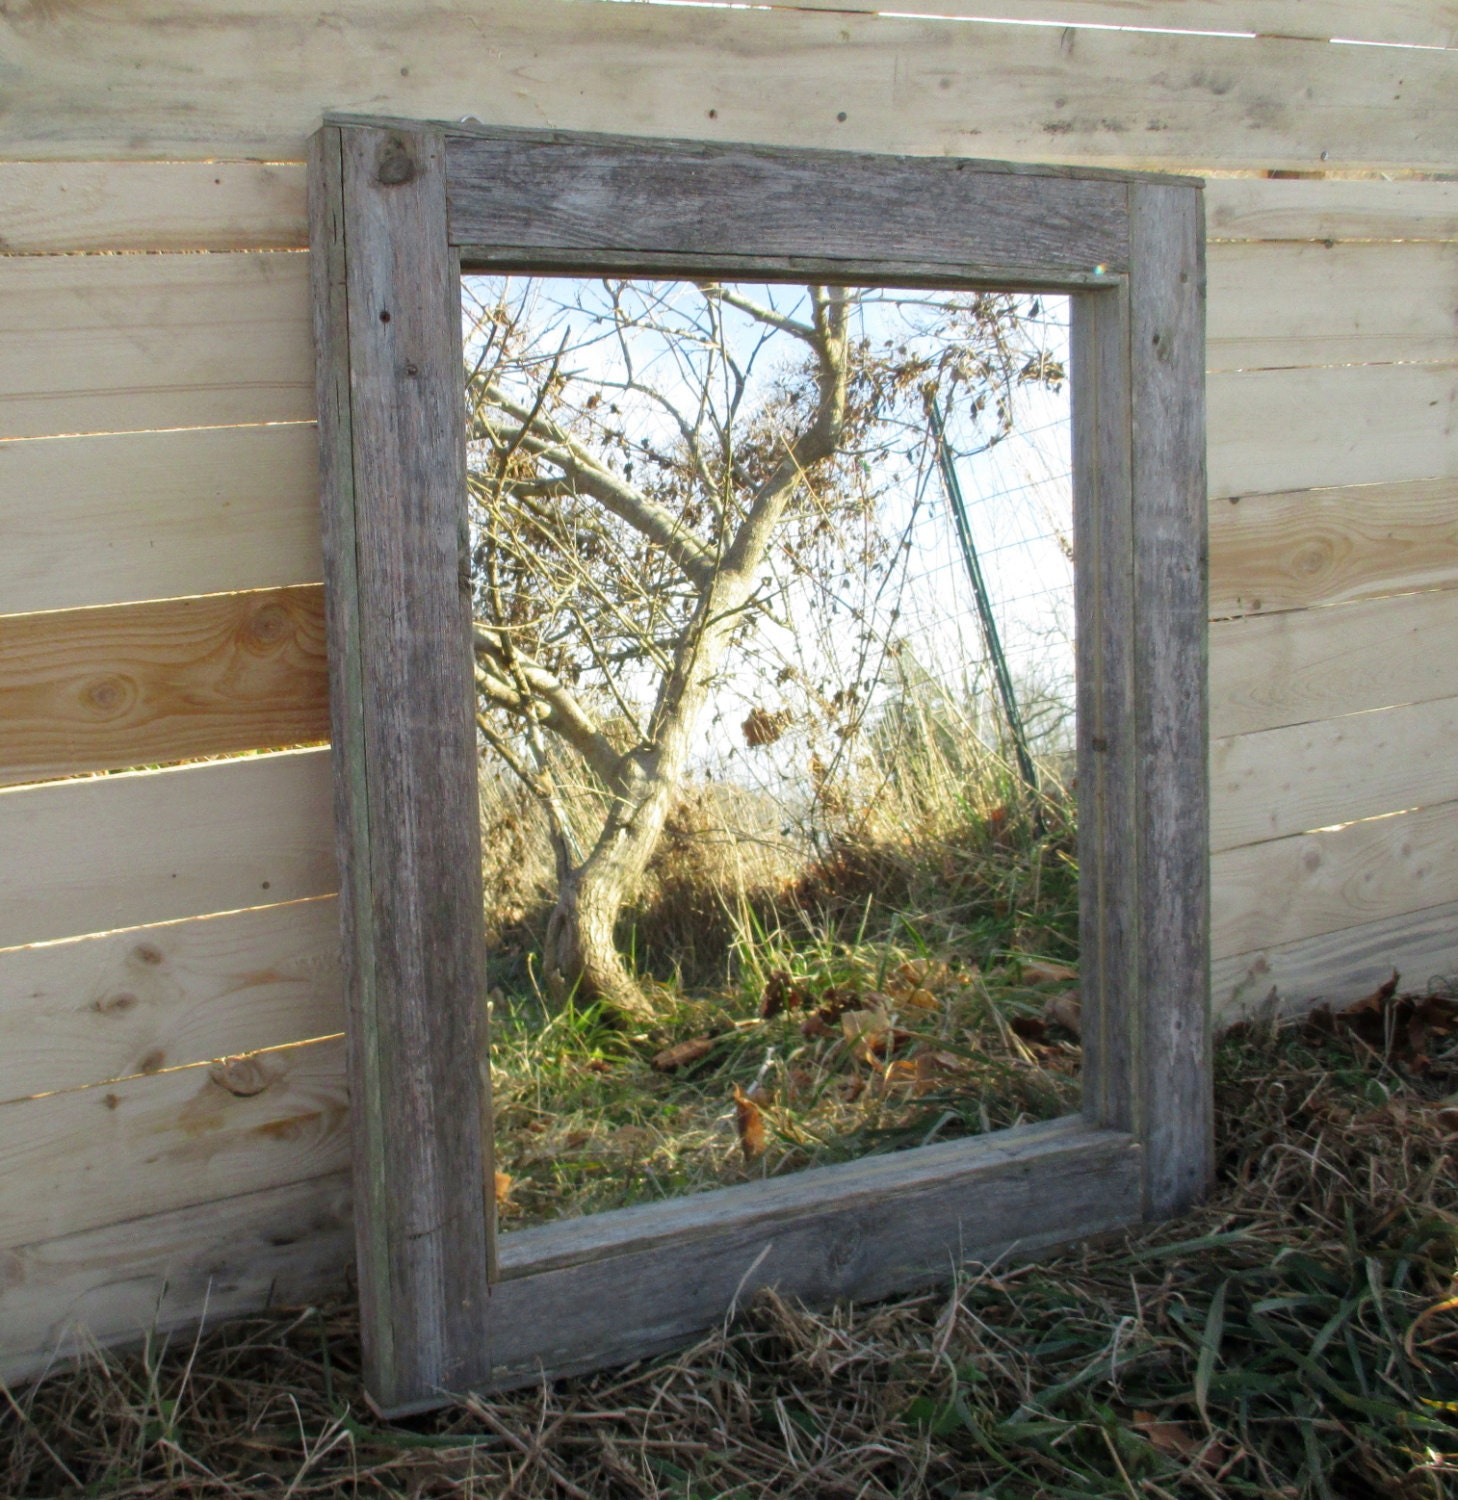 Reclaimed Wood Mirror - Rustic Lodge Decor - Bathroom Mirrors - Reclaimed Wood Etsy